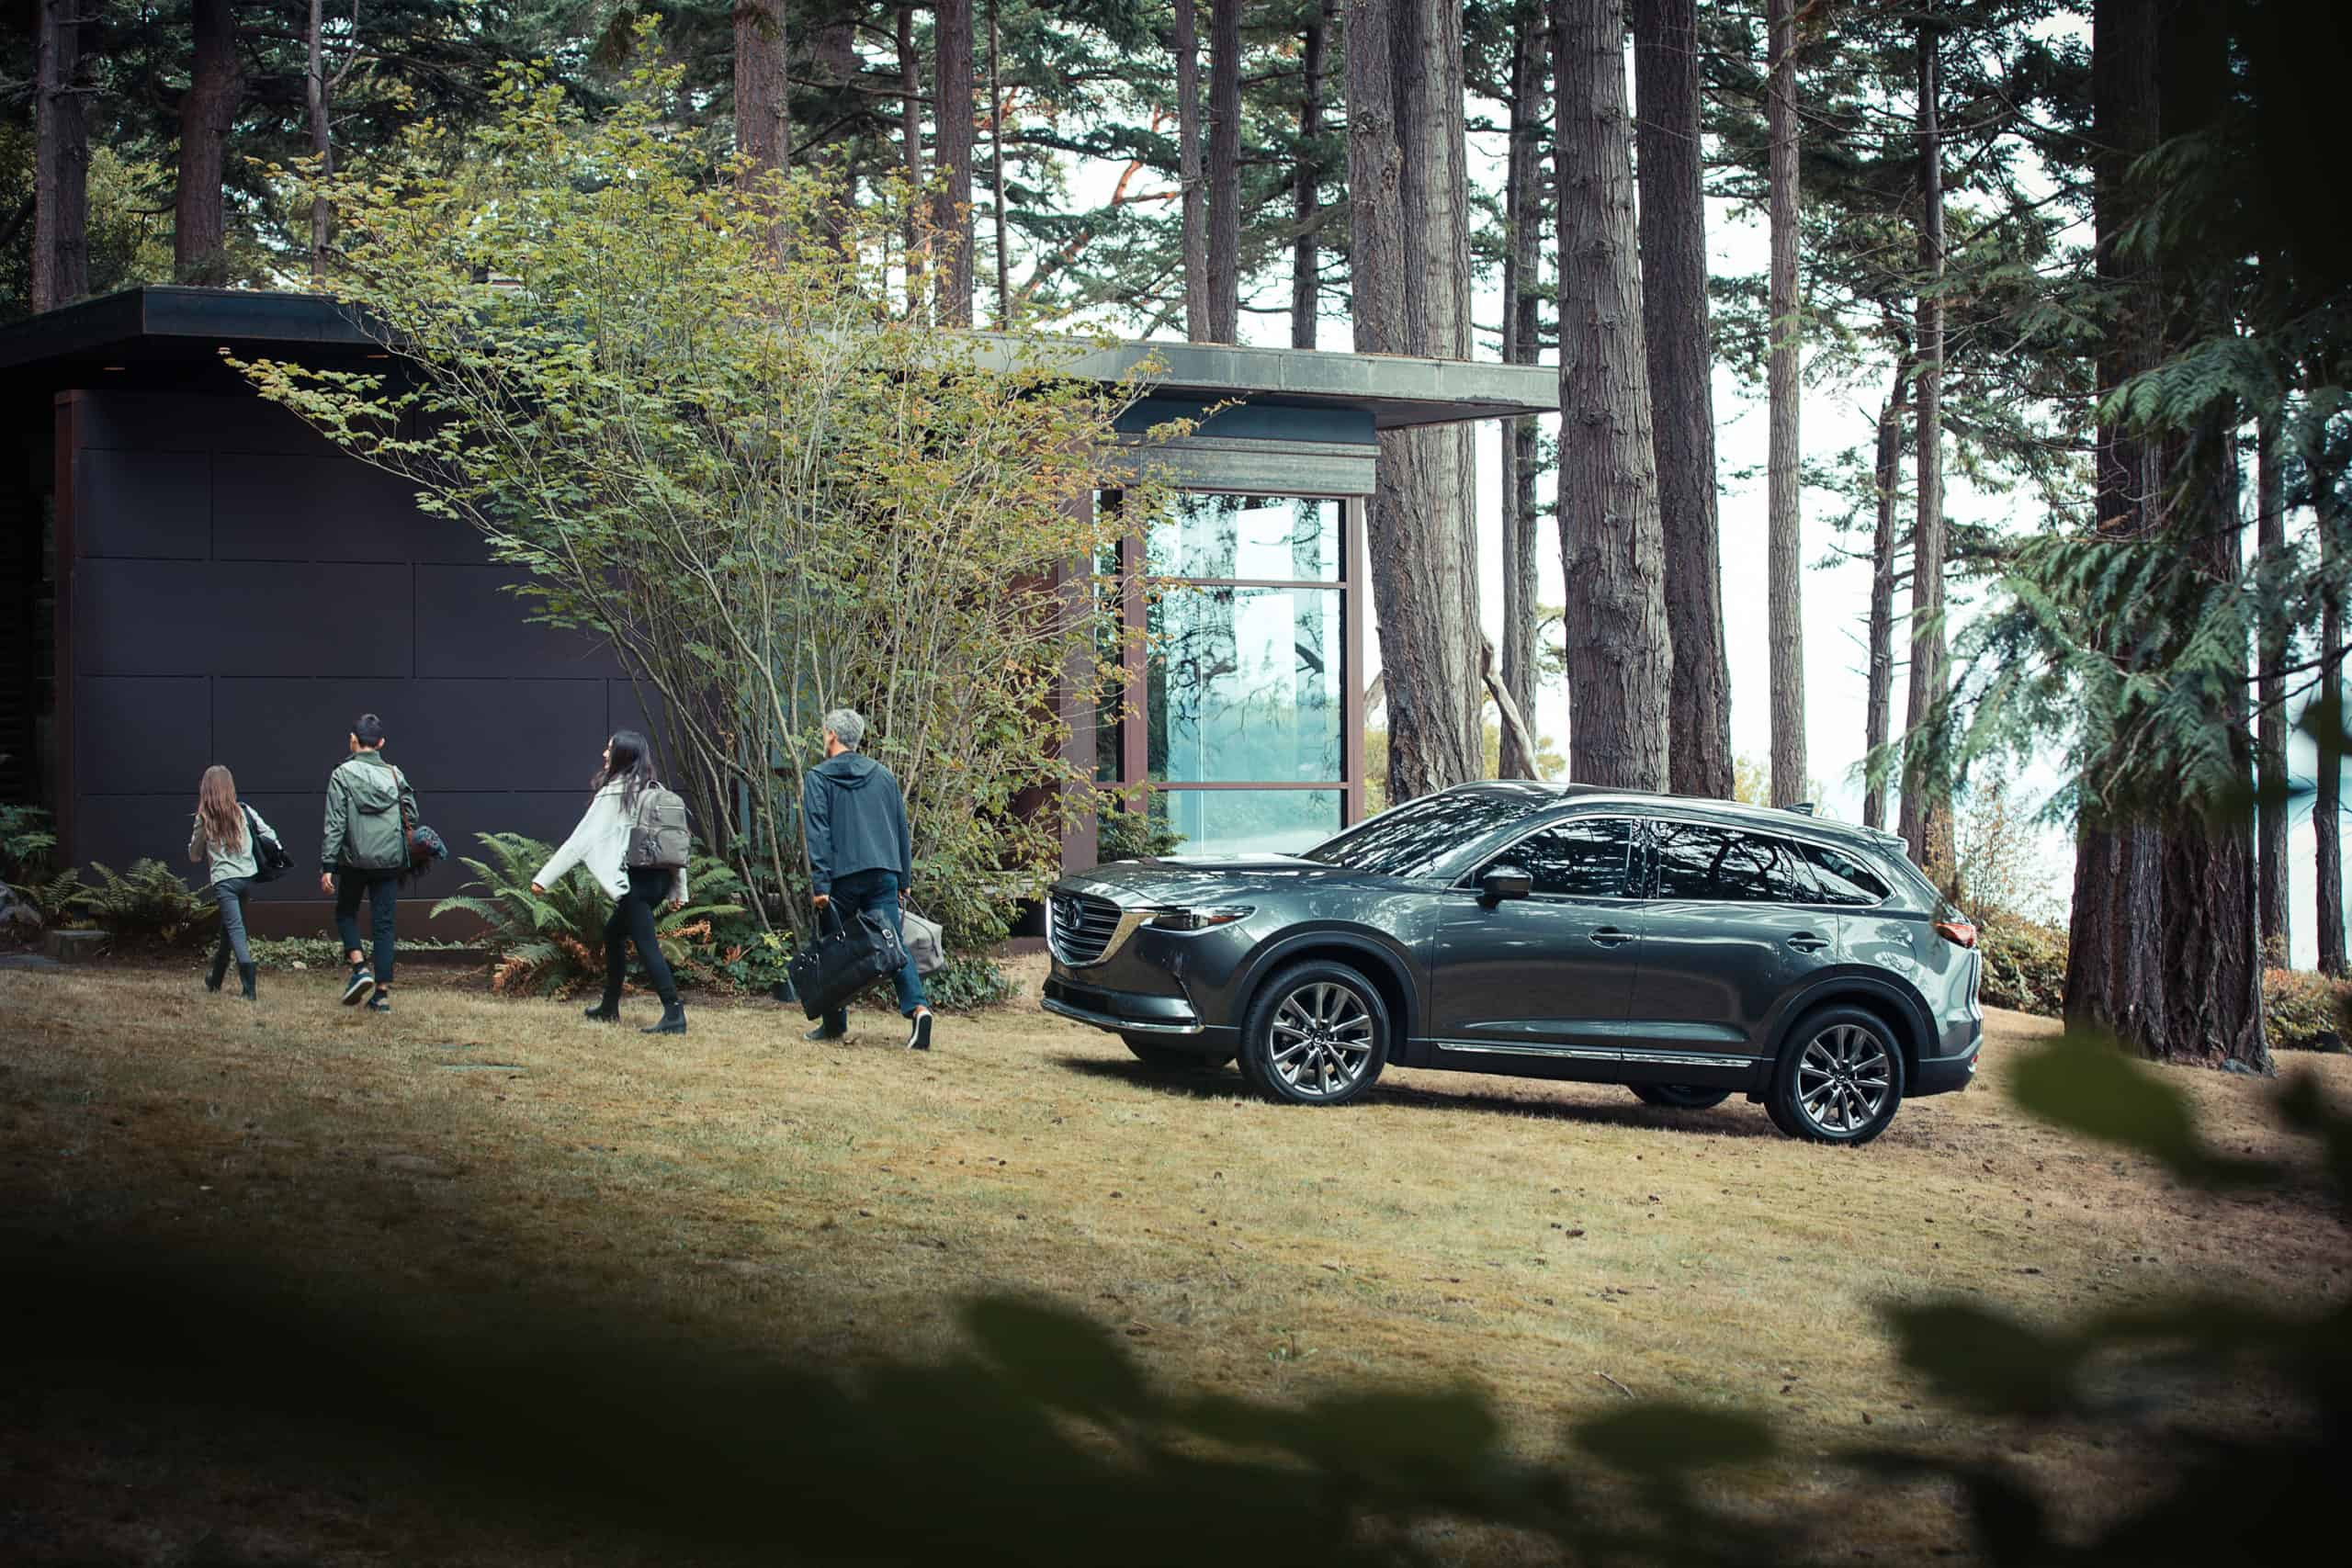 family walking into fancy cabin in the woods from mazda SUV